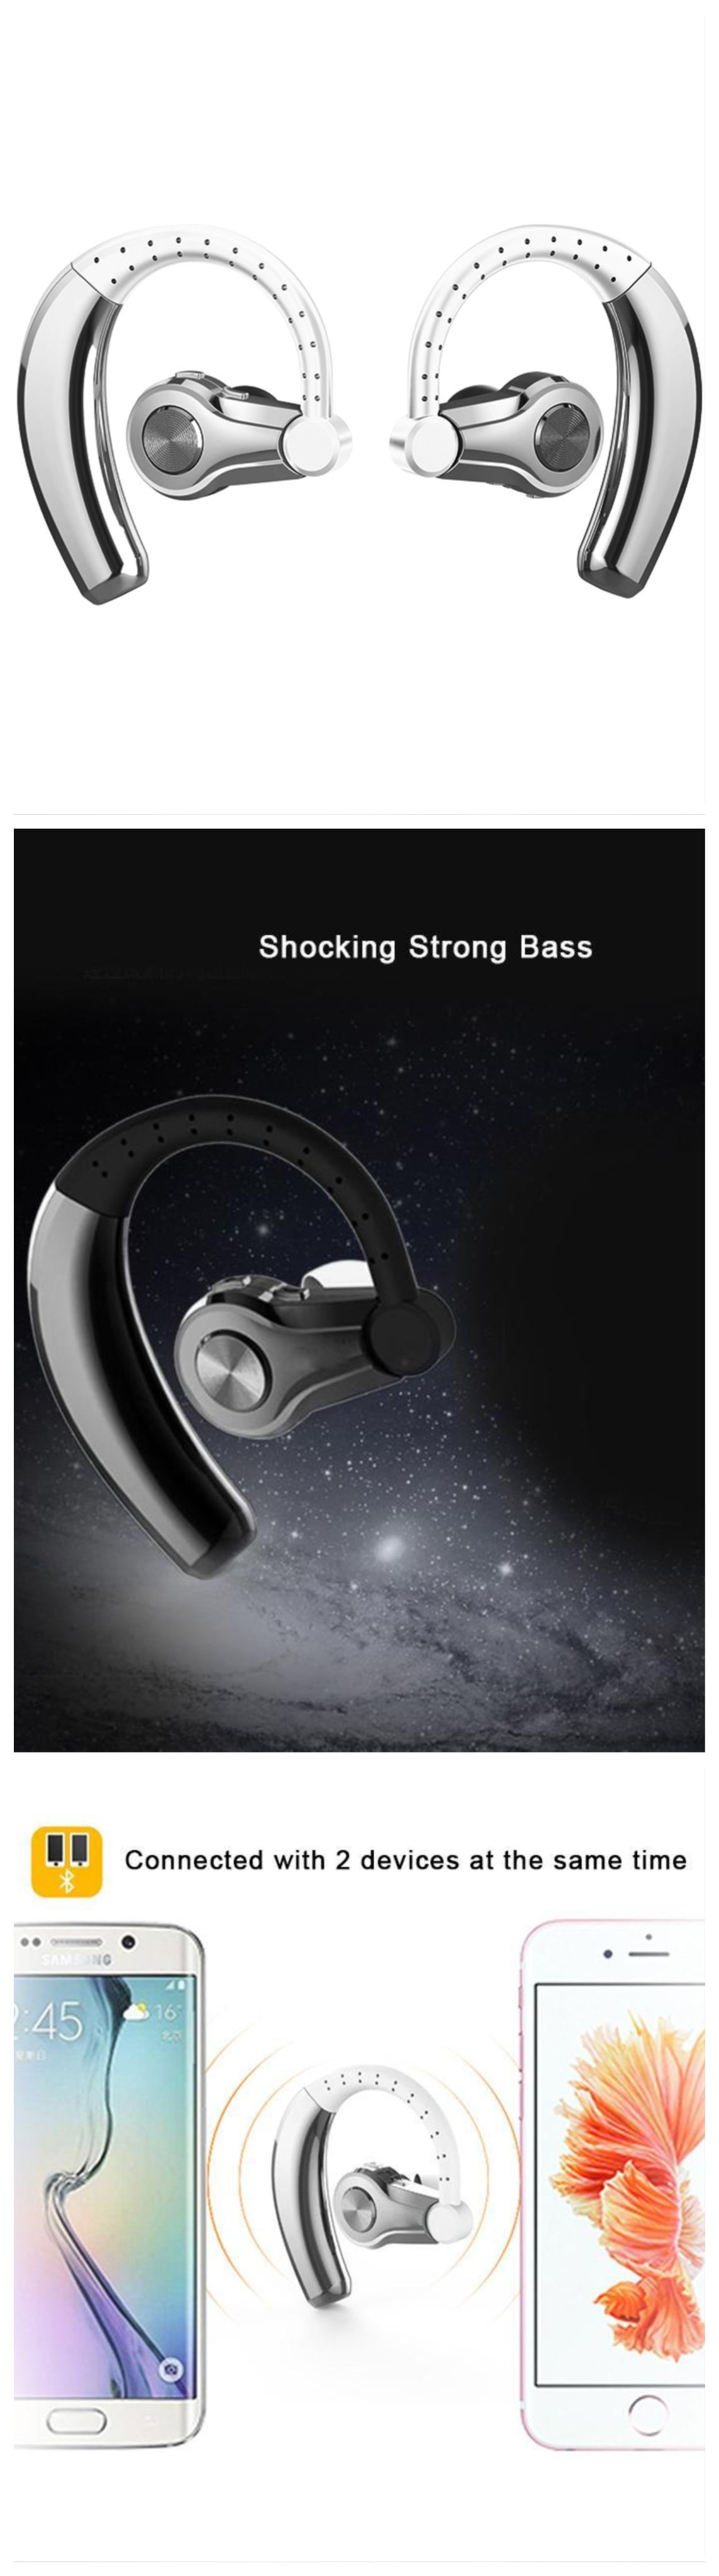 New Wireless Bluetooth Headphones Ear Hooks Earphone With Microphone Ear Headset For Android Ios Windows Bluetooth Headphones Wireless Bluetooth Headphones Wireless Bluetooth